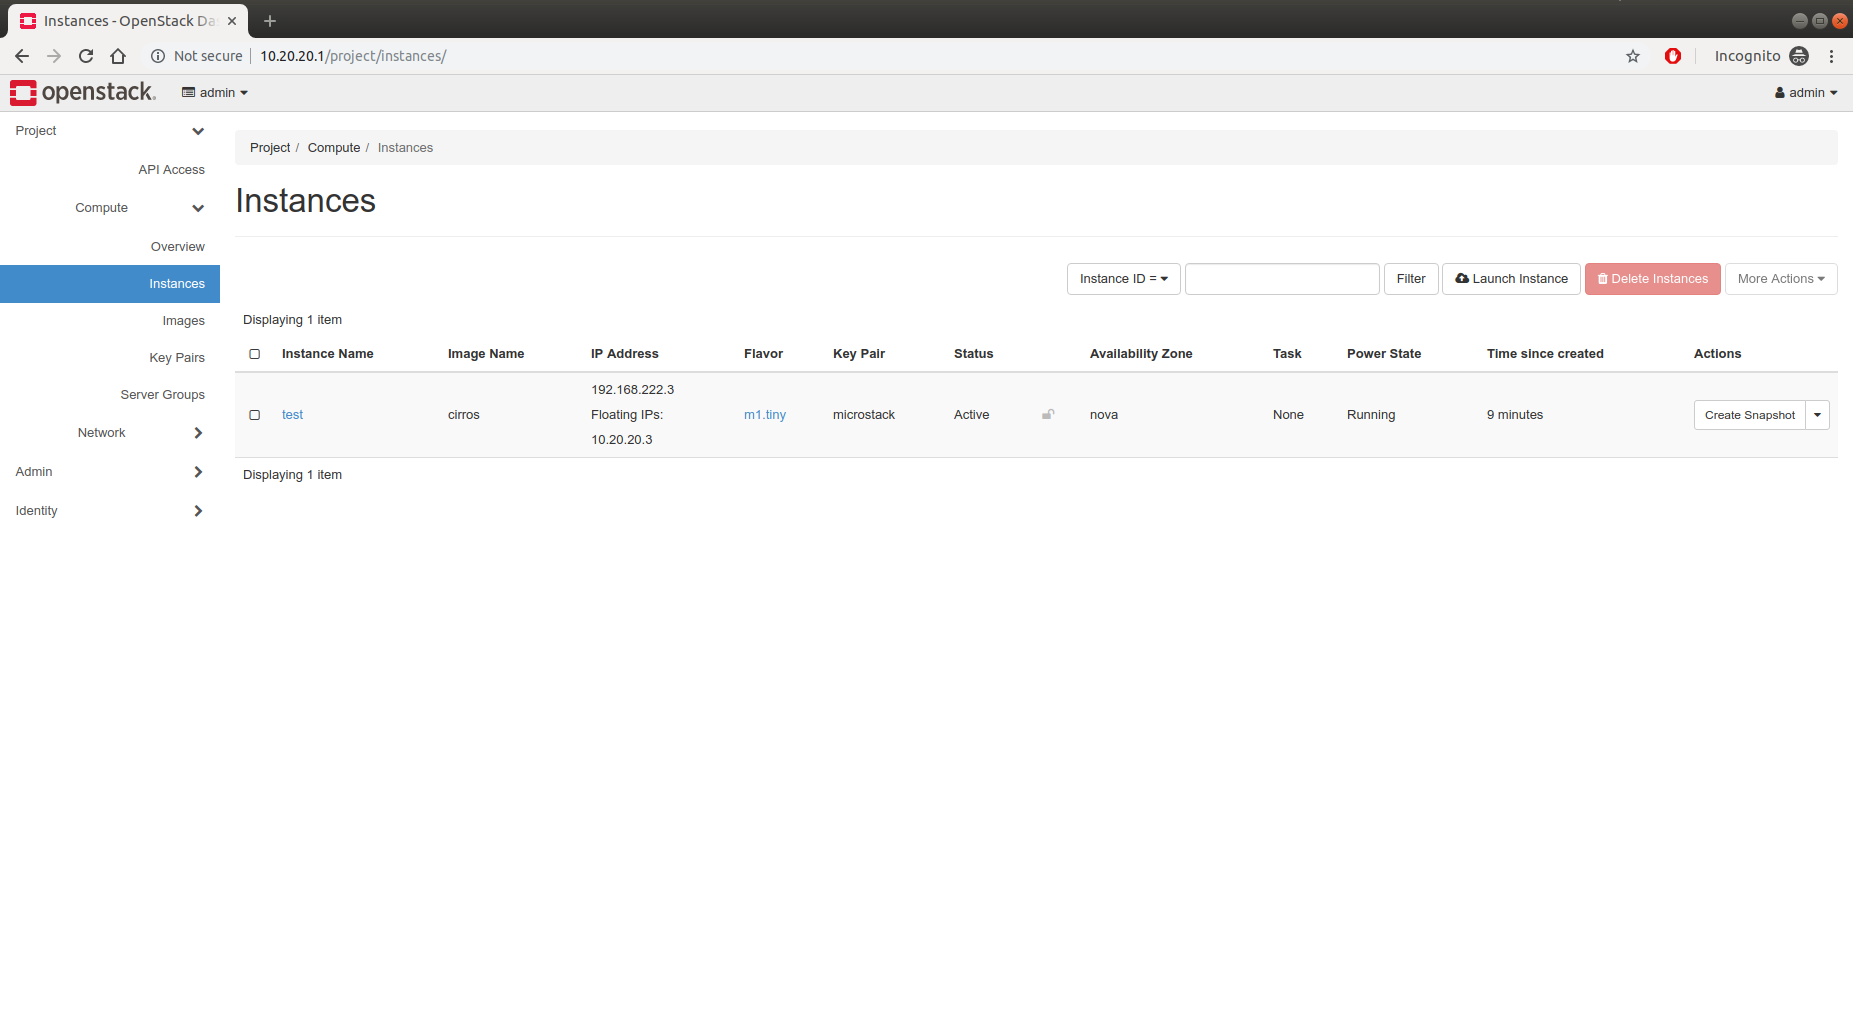 OpenStack instances page